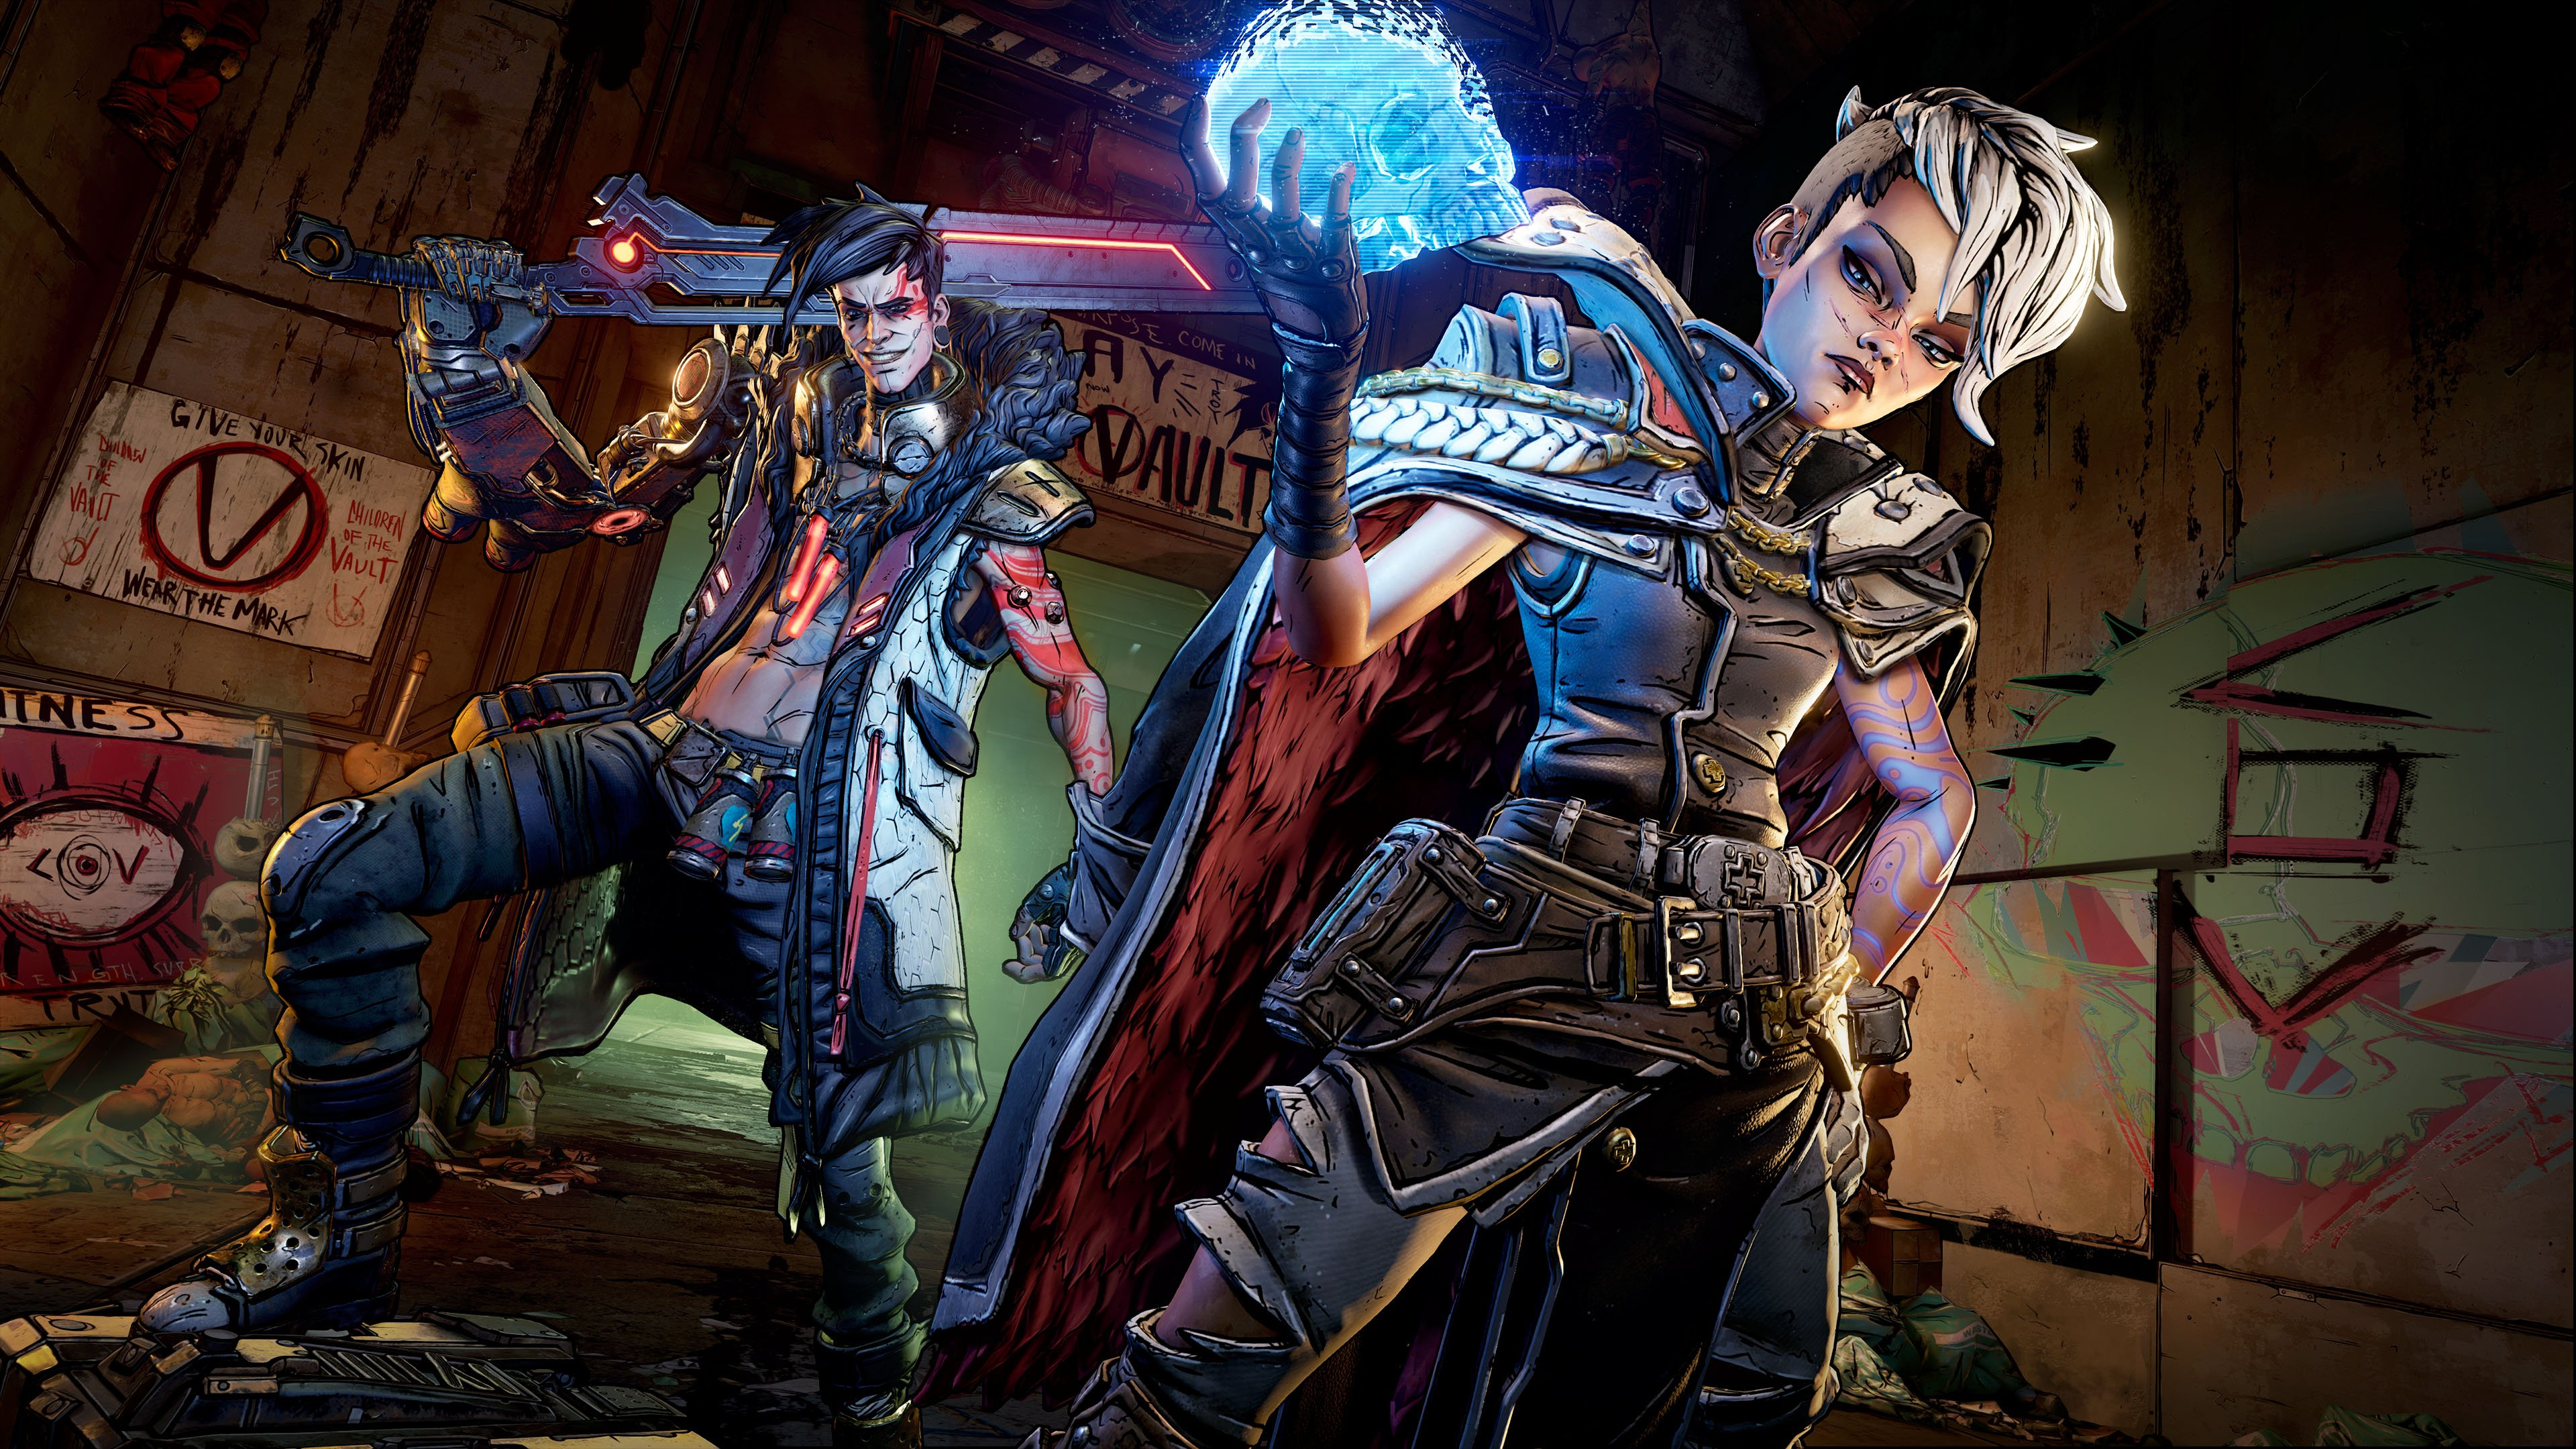 The Twins in Borderlands 3